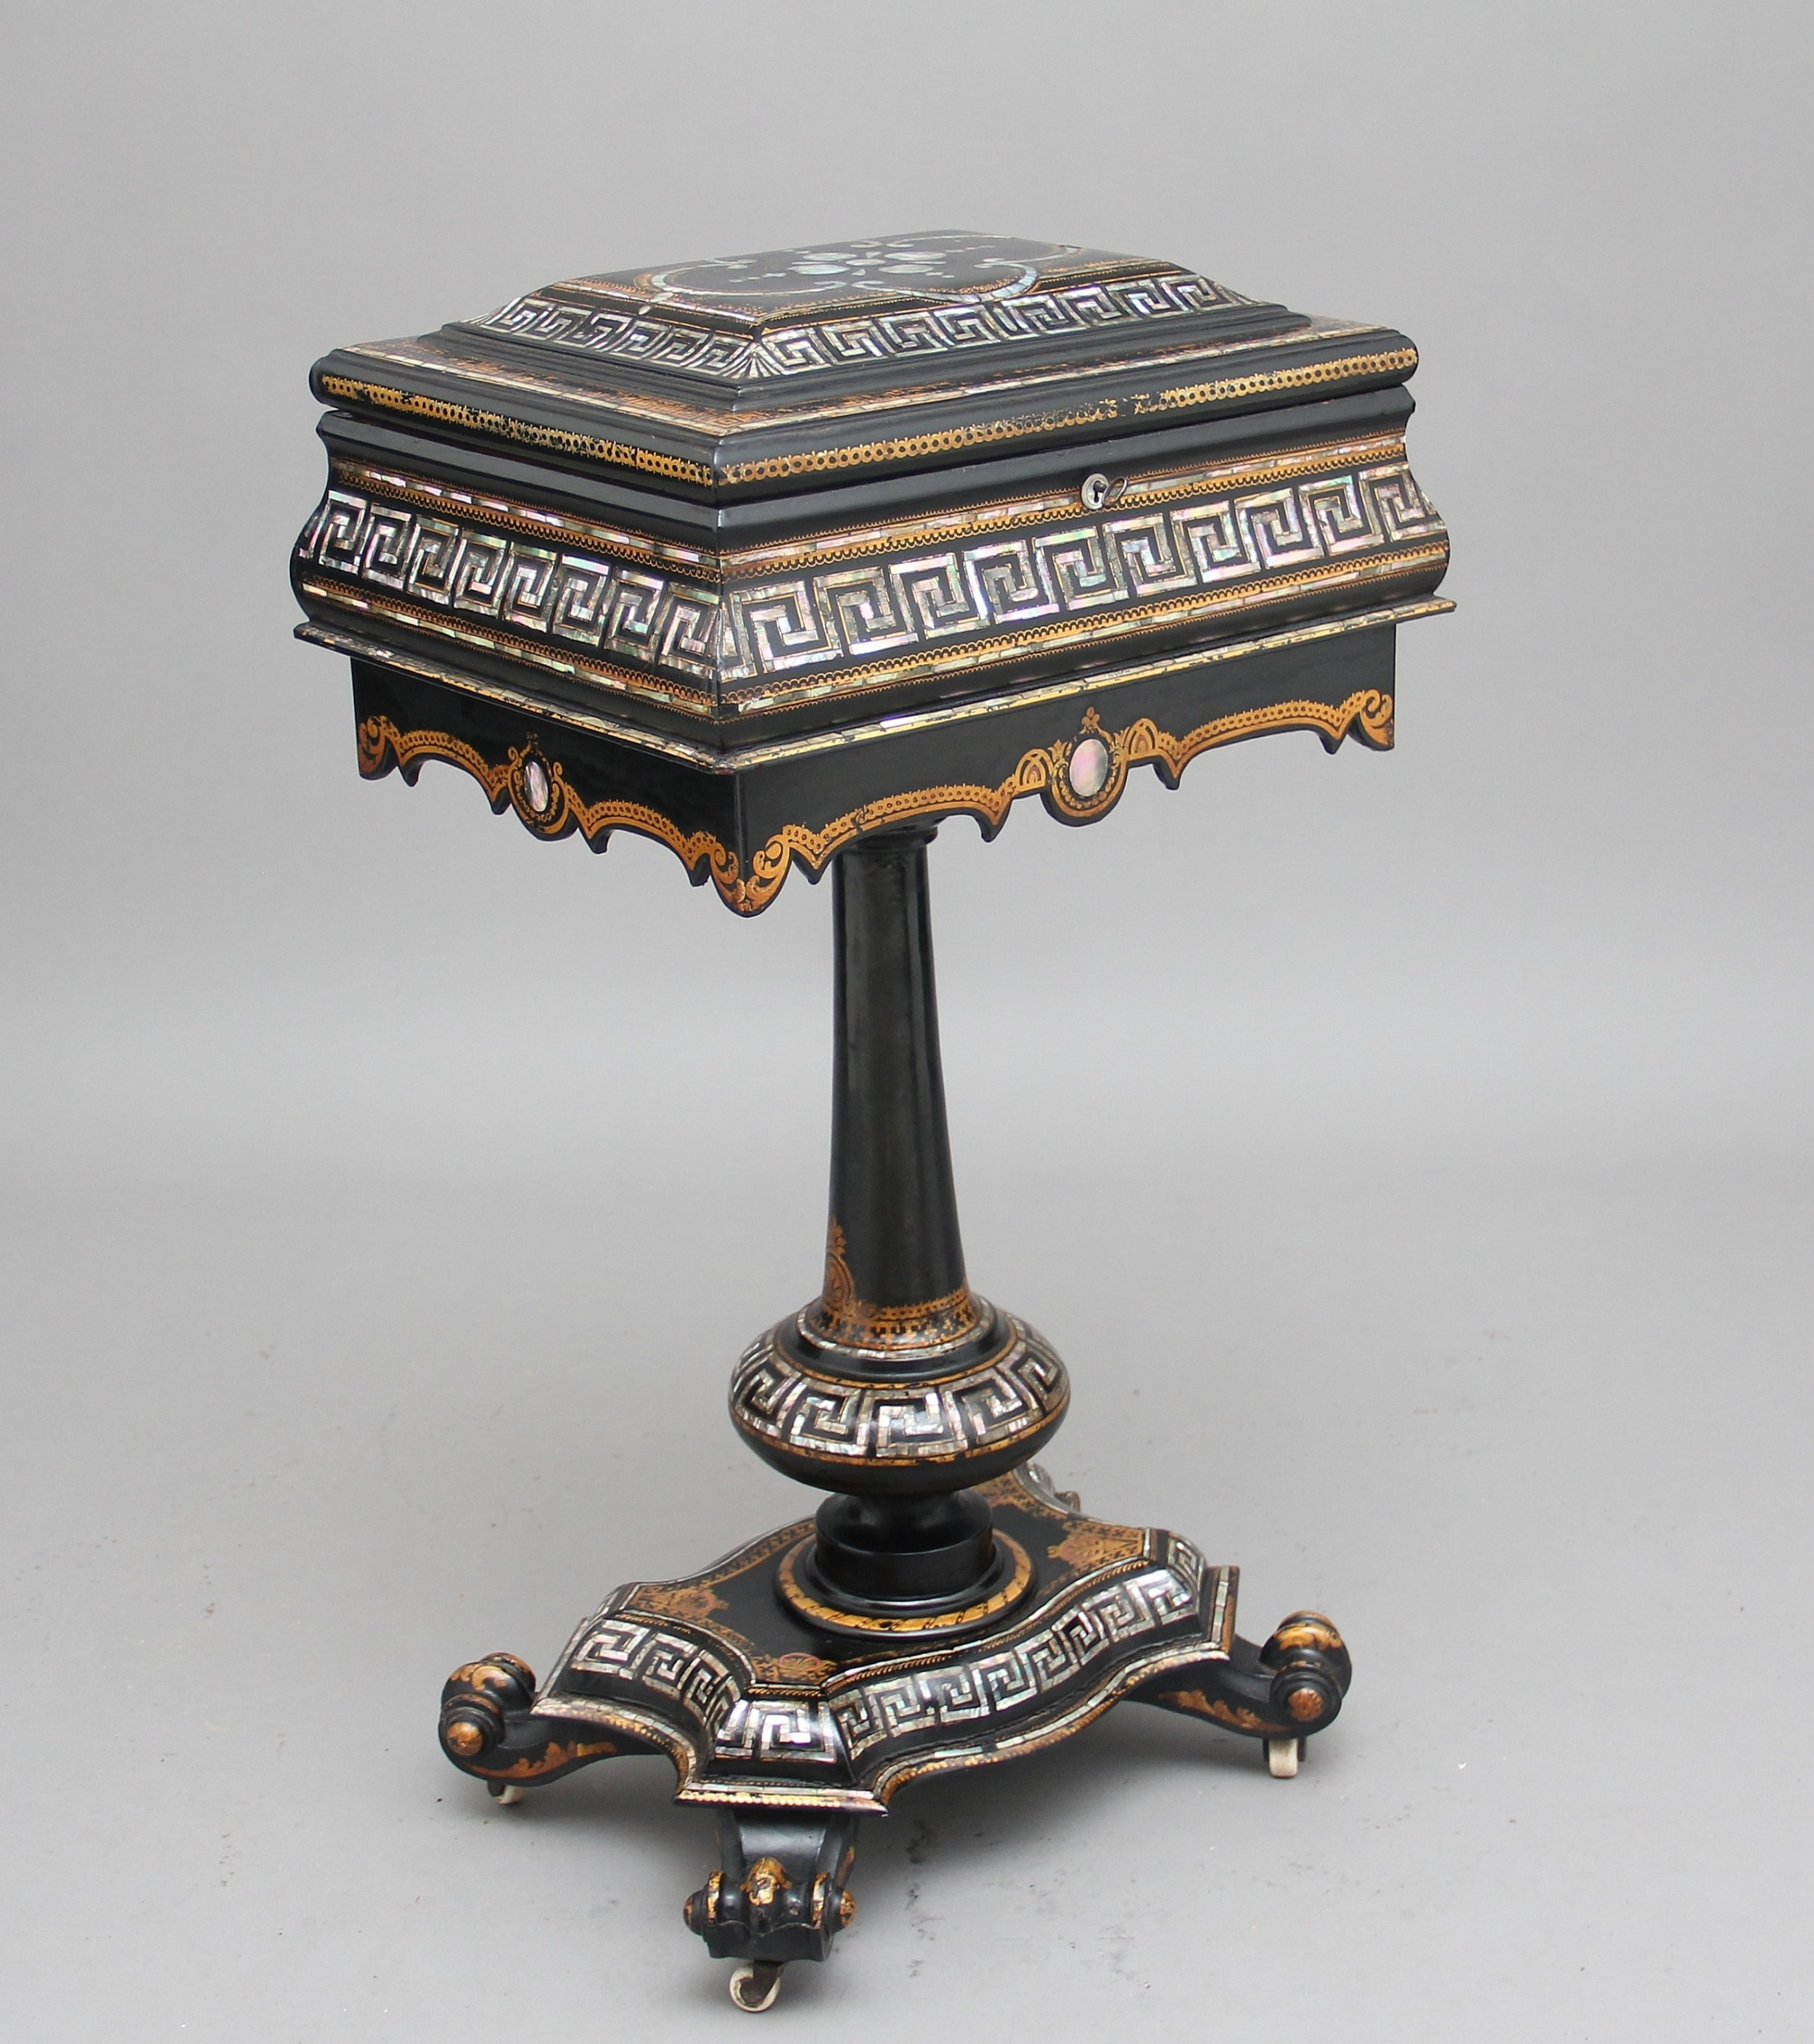 19th century papiermache work table